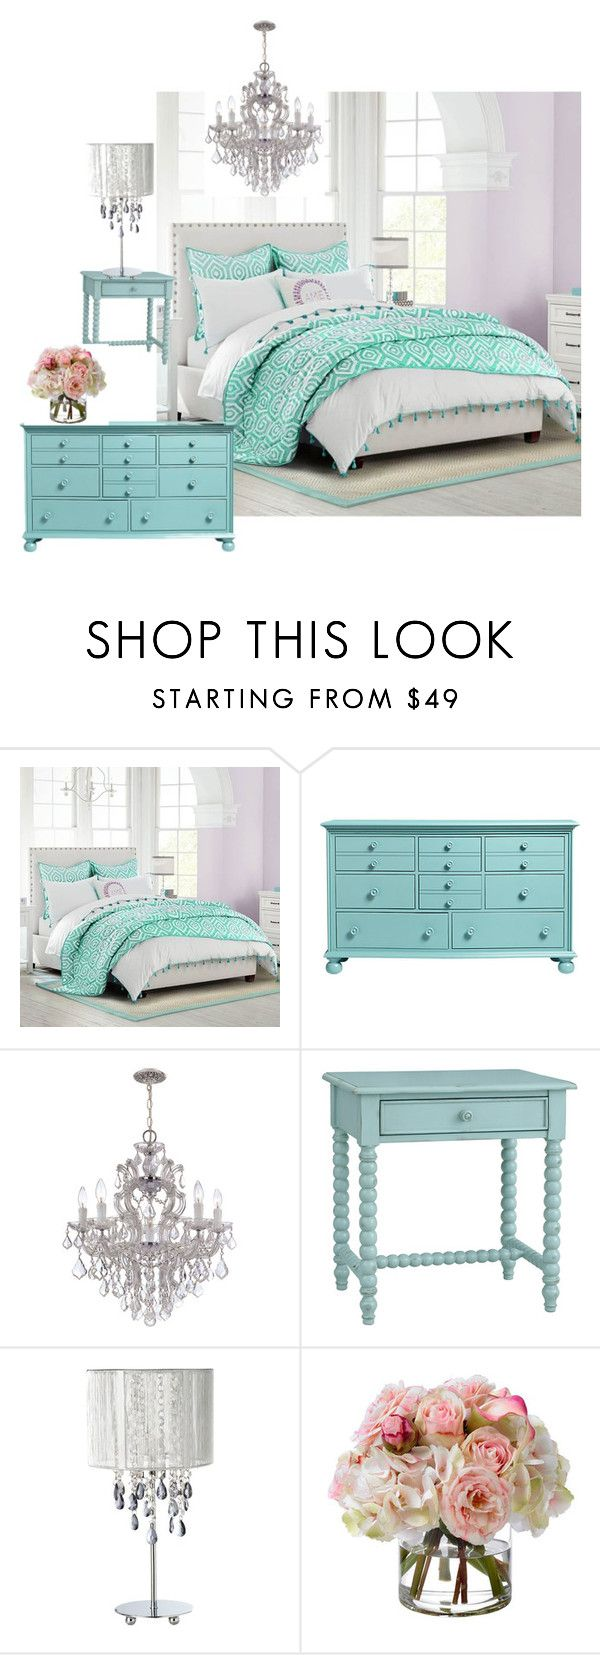 """""""McDonald Tween Bedroom"""" by tmarrah on Polyvore featuring interior, interiors, interior design, home, home decor, interior decorating, PBteen, Redford House, Diane James and bedroom"""